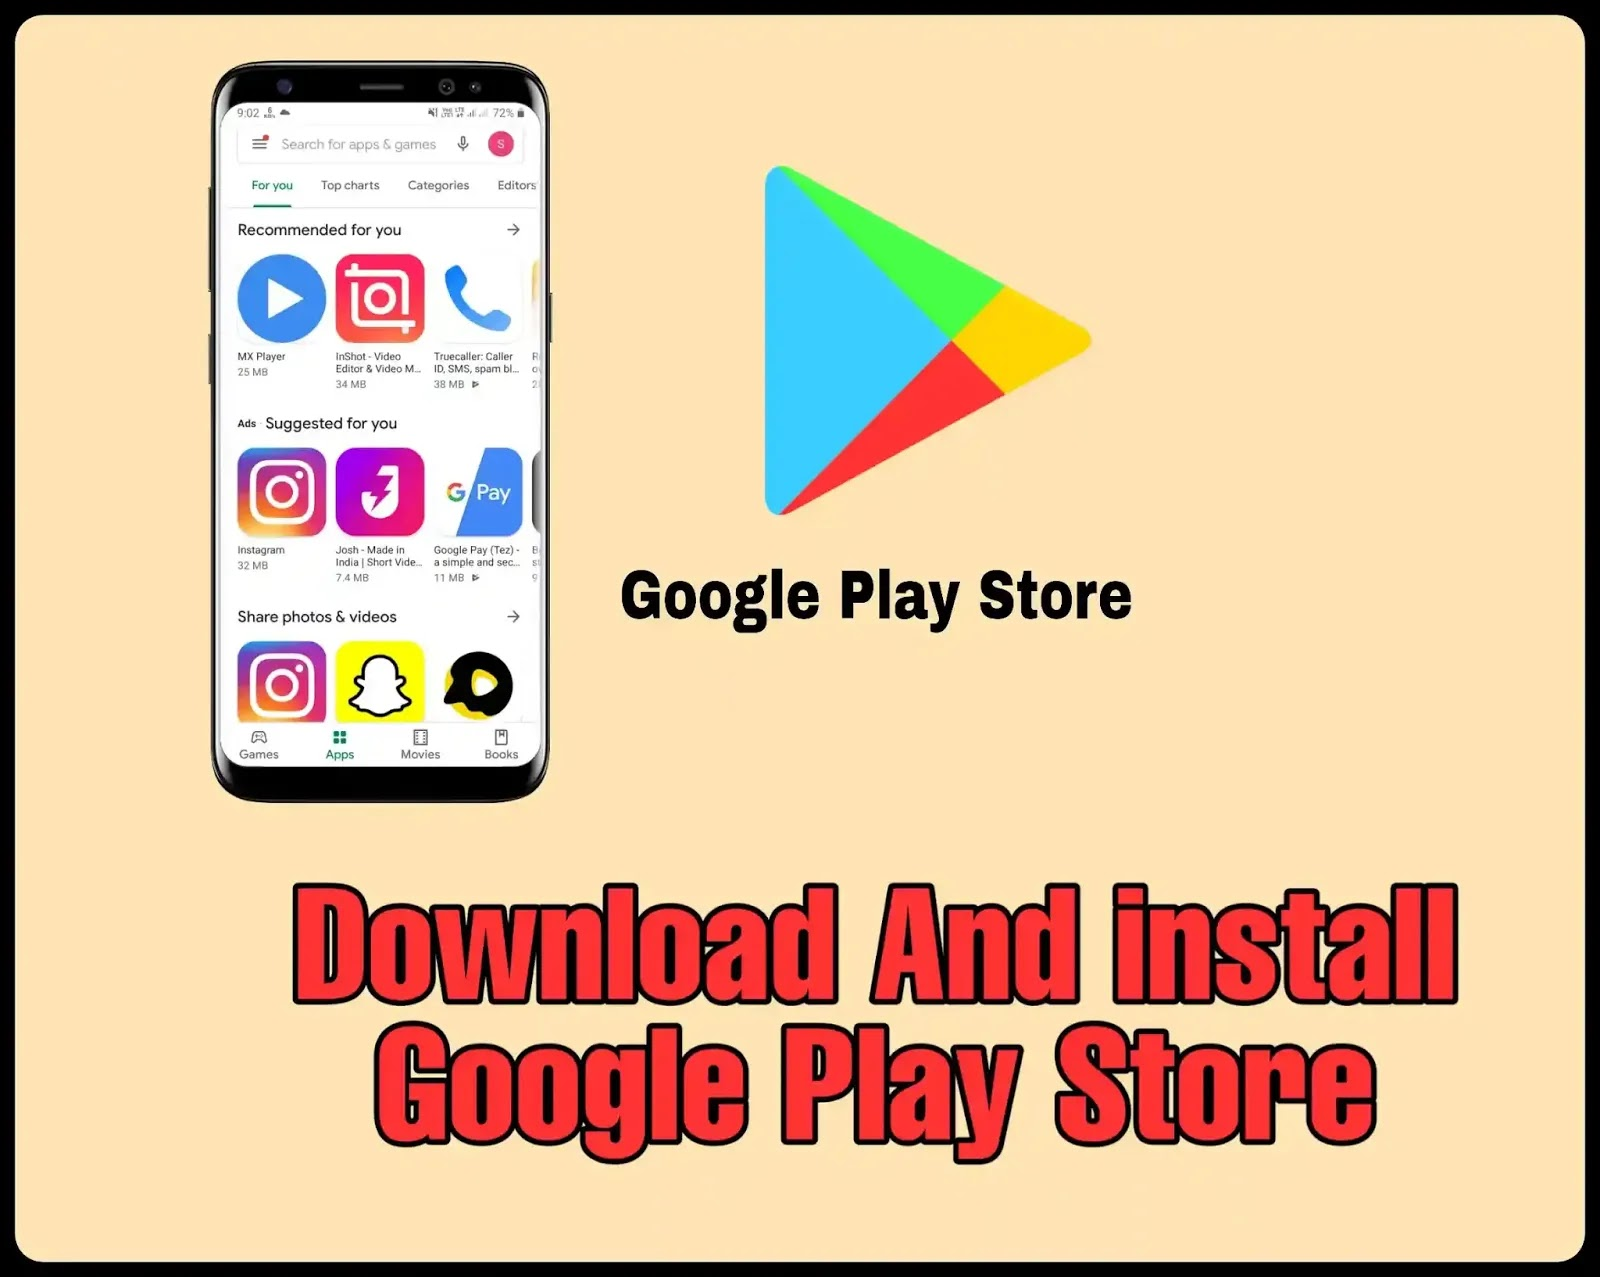 download-and-install-google-play-store